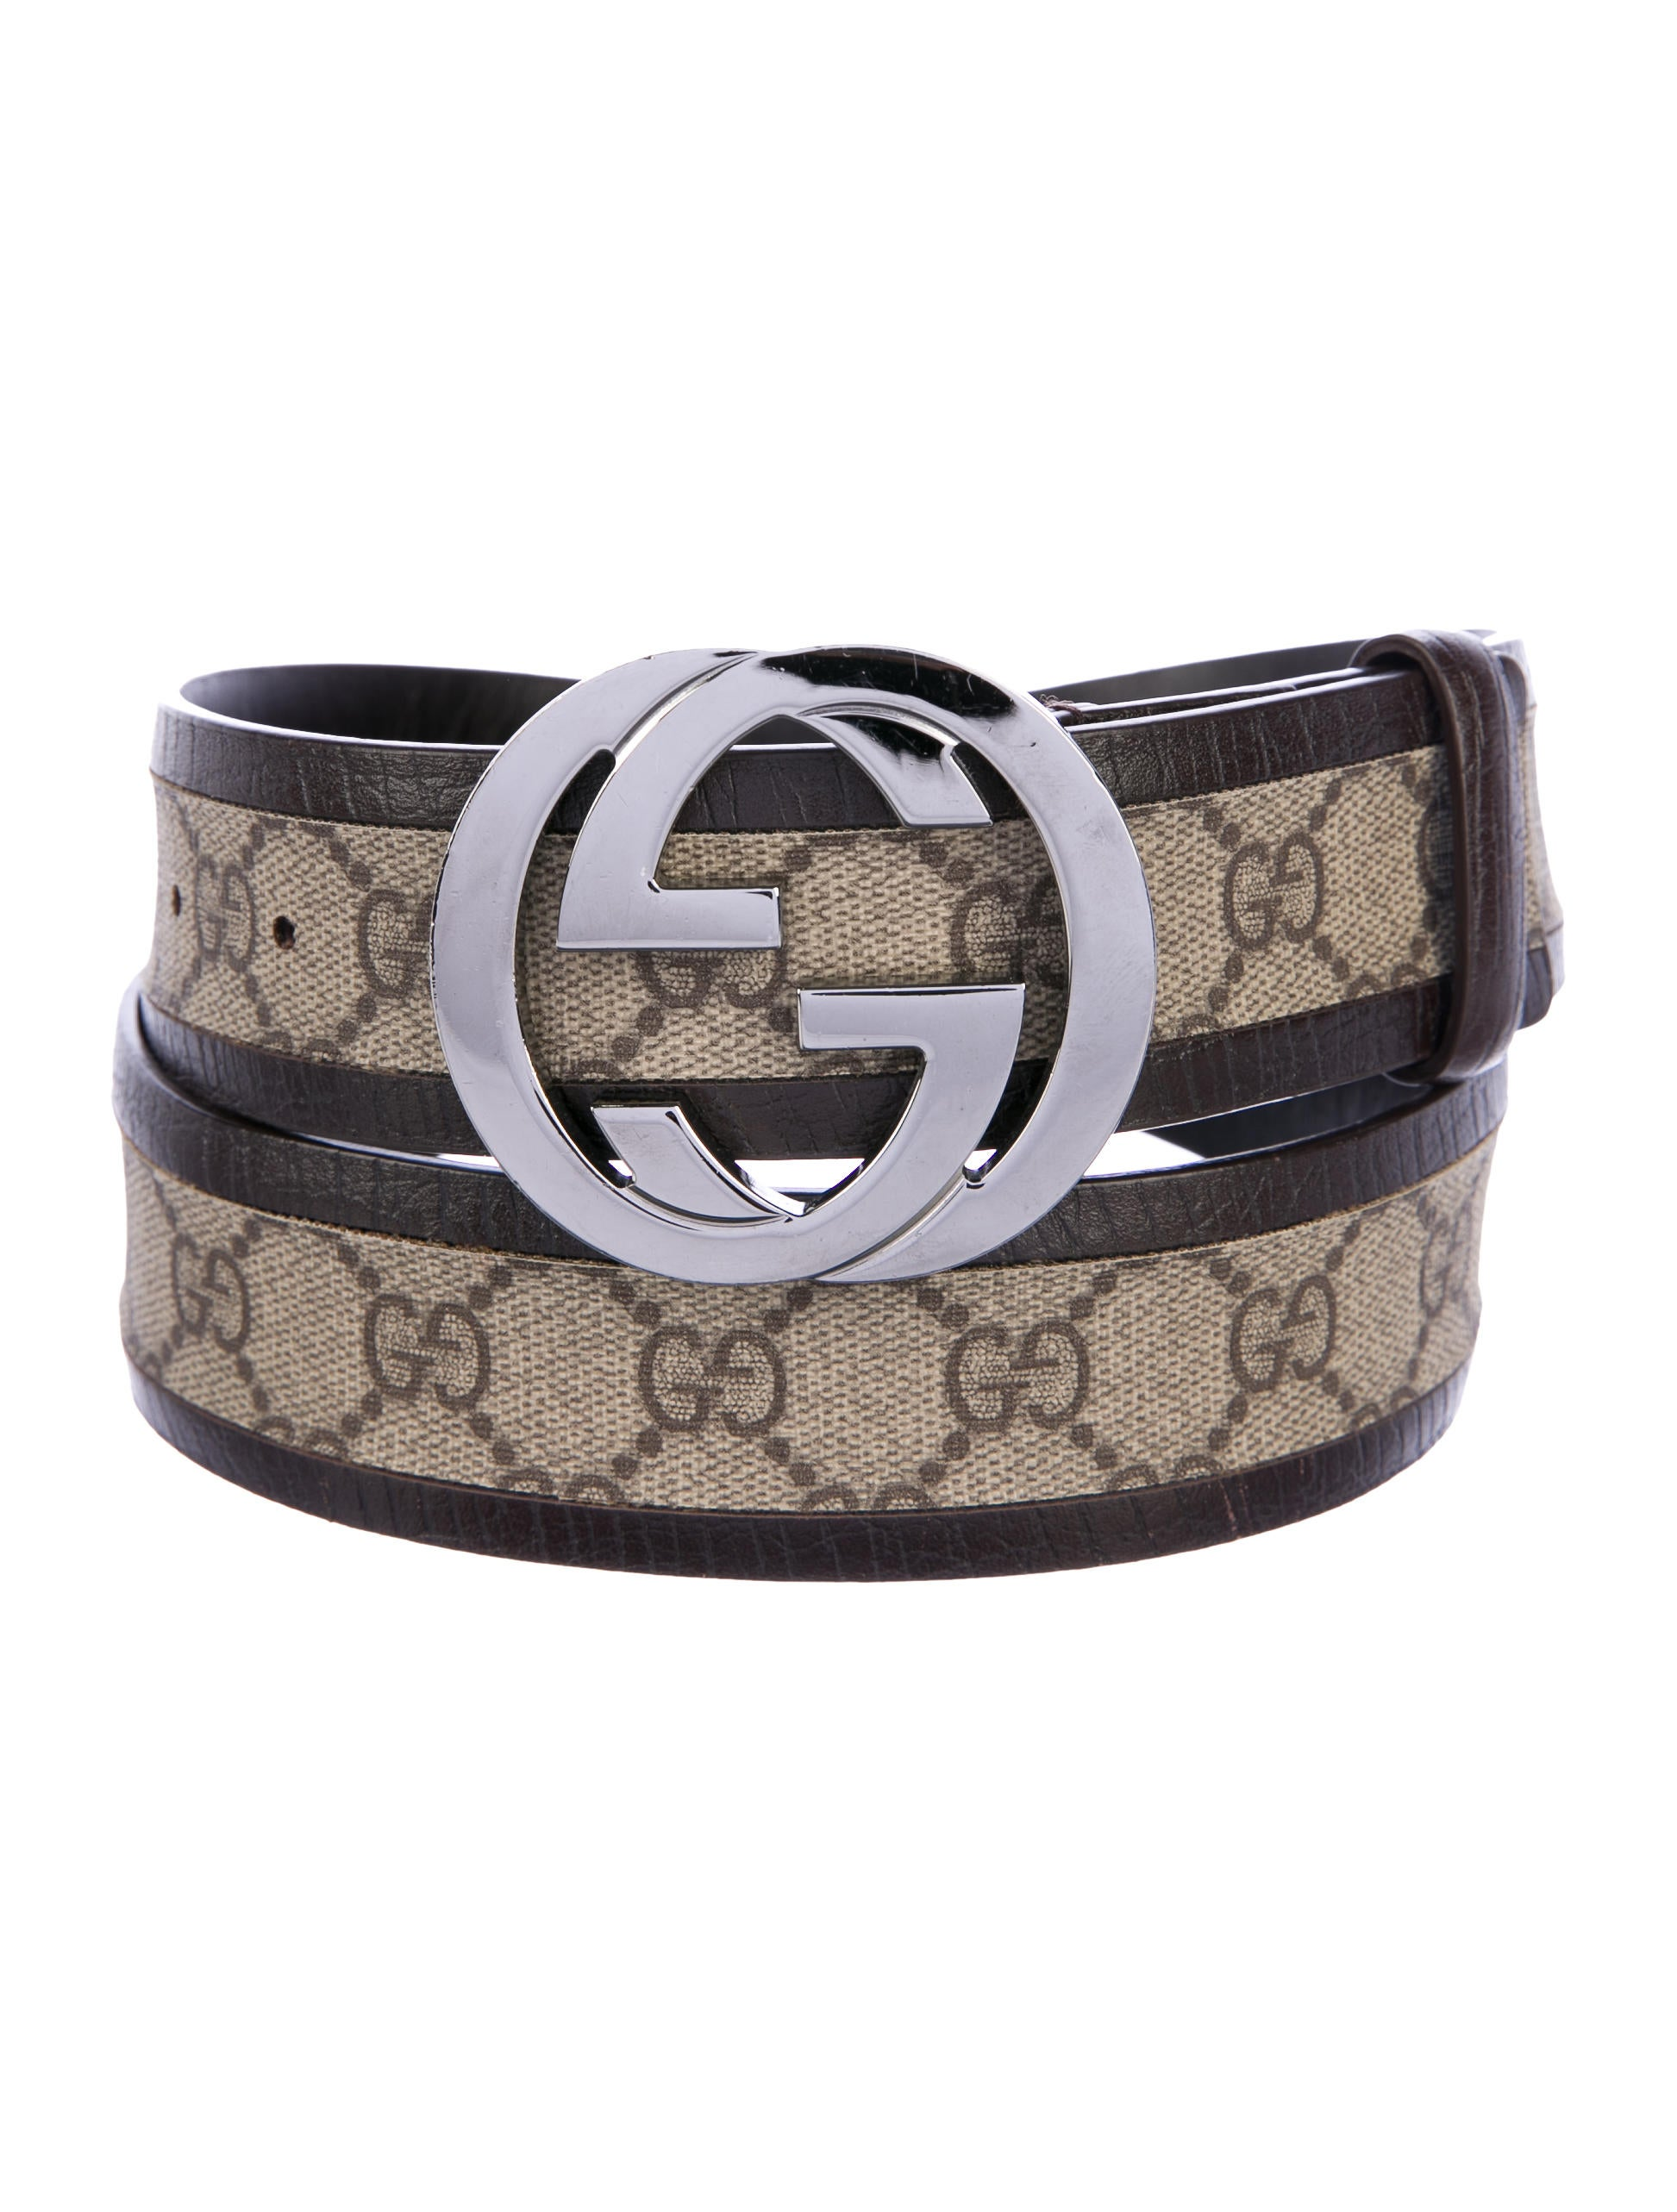 f1d716c23 Gucci Leather-Trimmed GG Supreme Belt - Accessories - GUC184534 ...